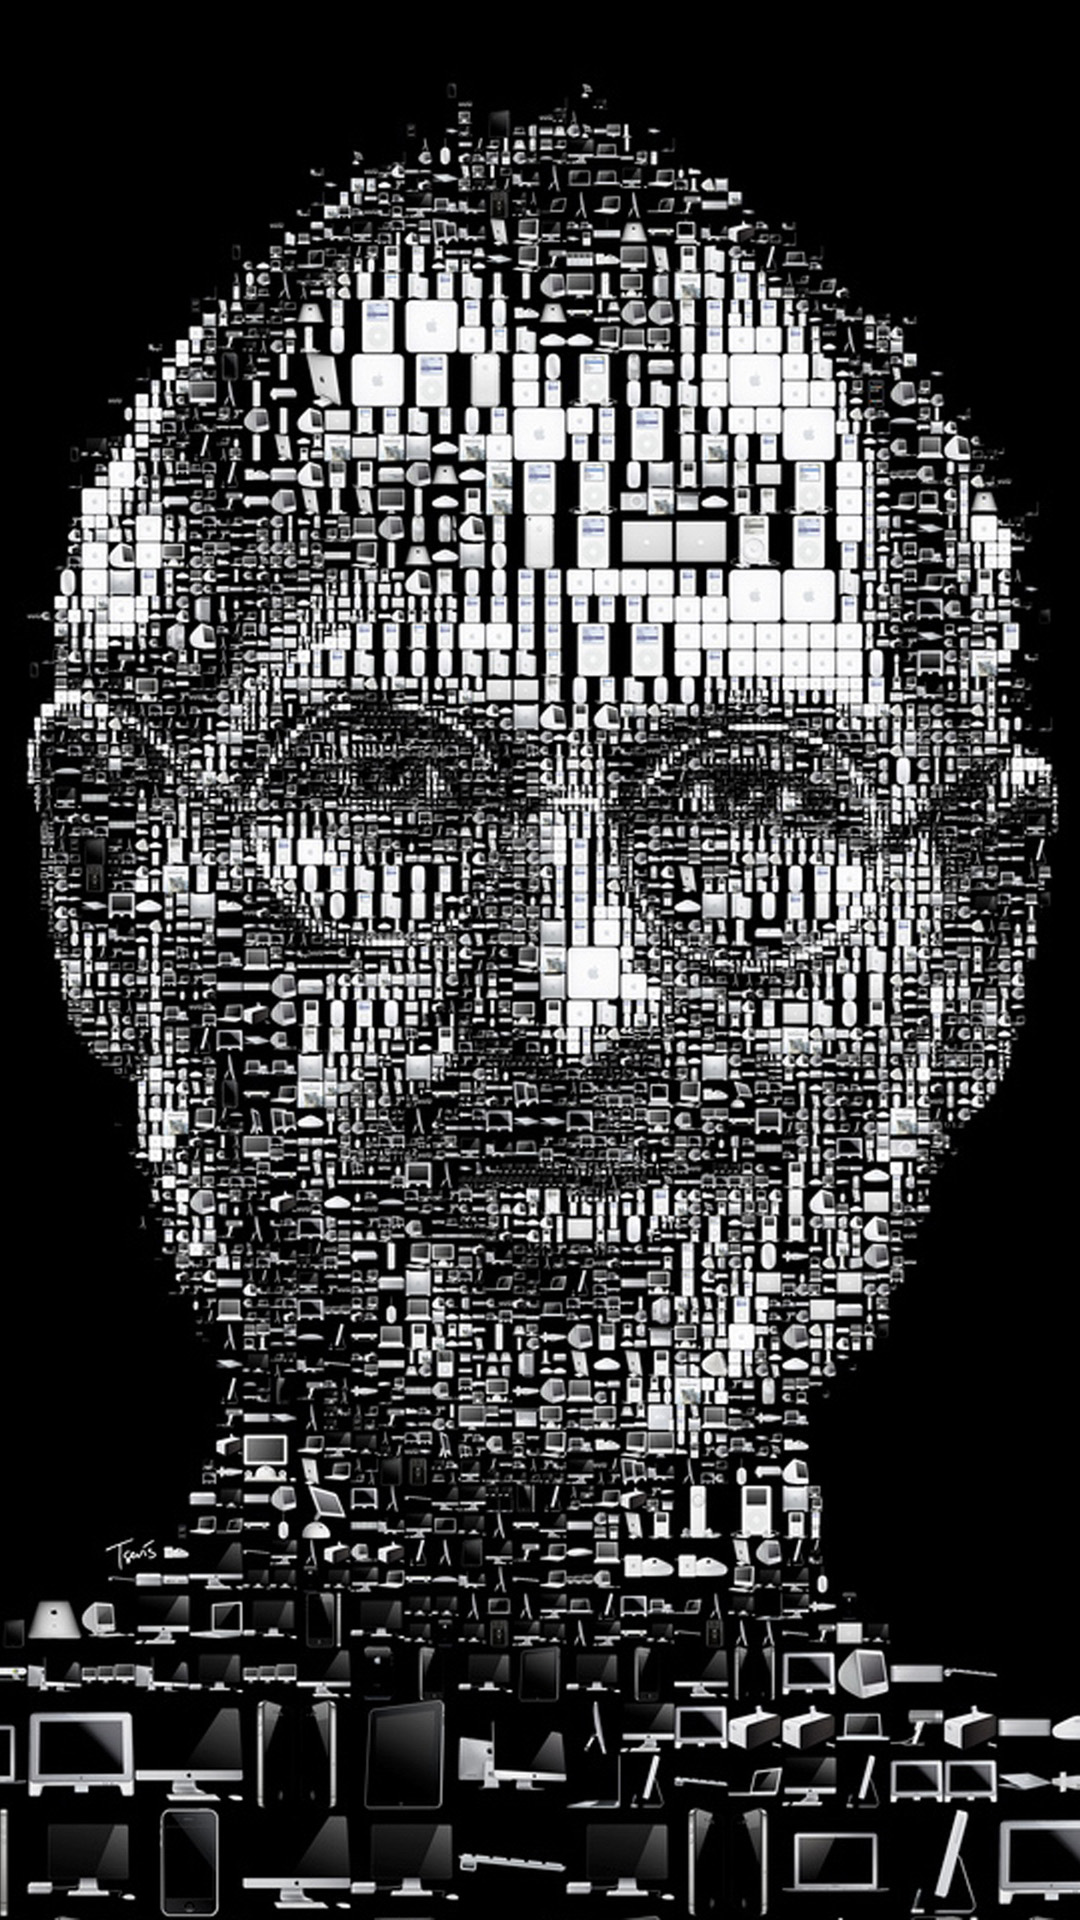 Steve Jobs Iphone Wallpaper Steve Jobs Tribute Wallpapers For Iphone 6 And Iphone 6 Plus